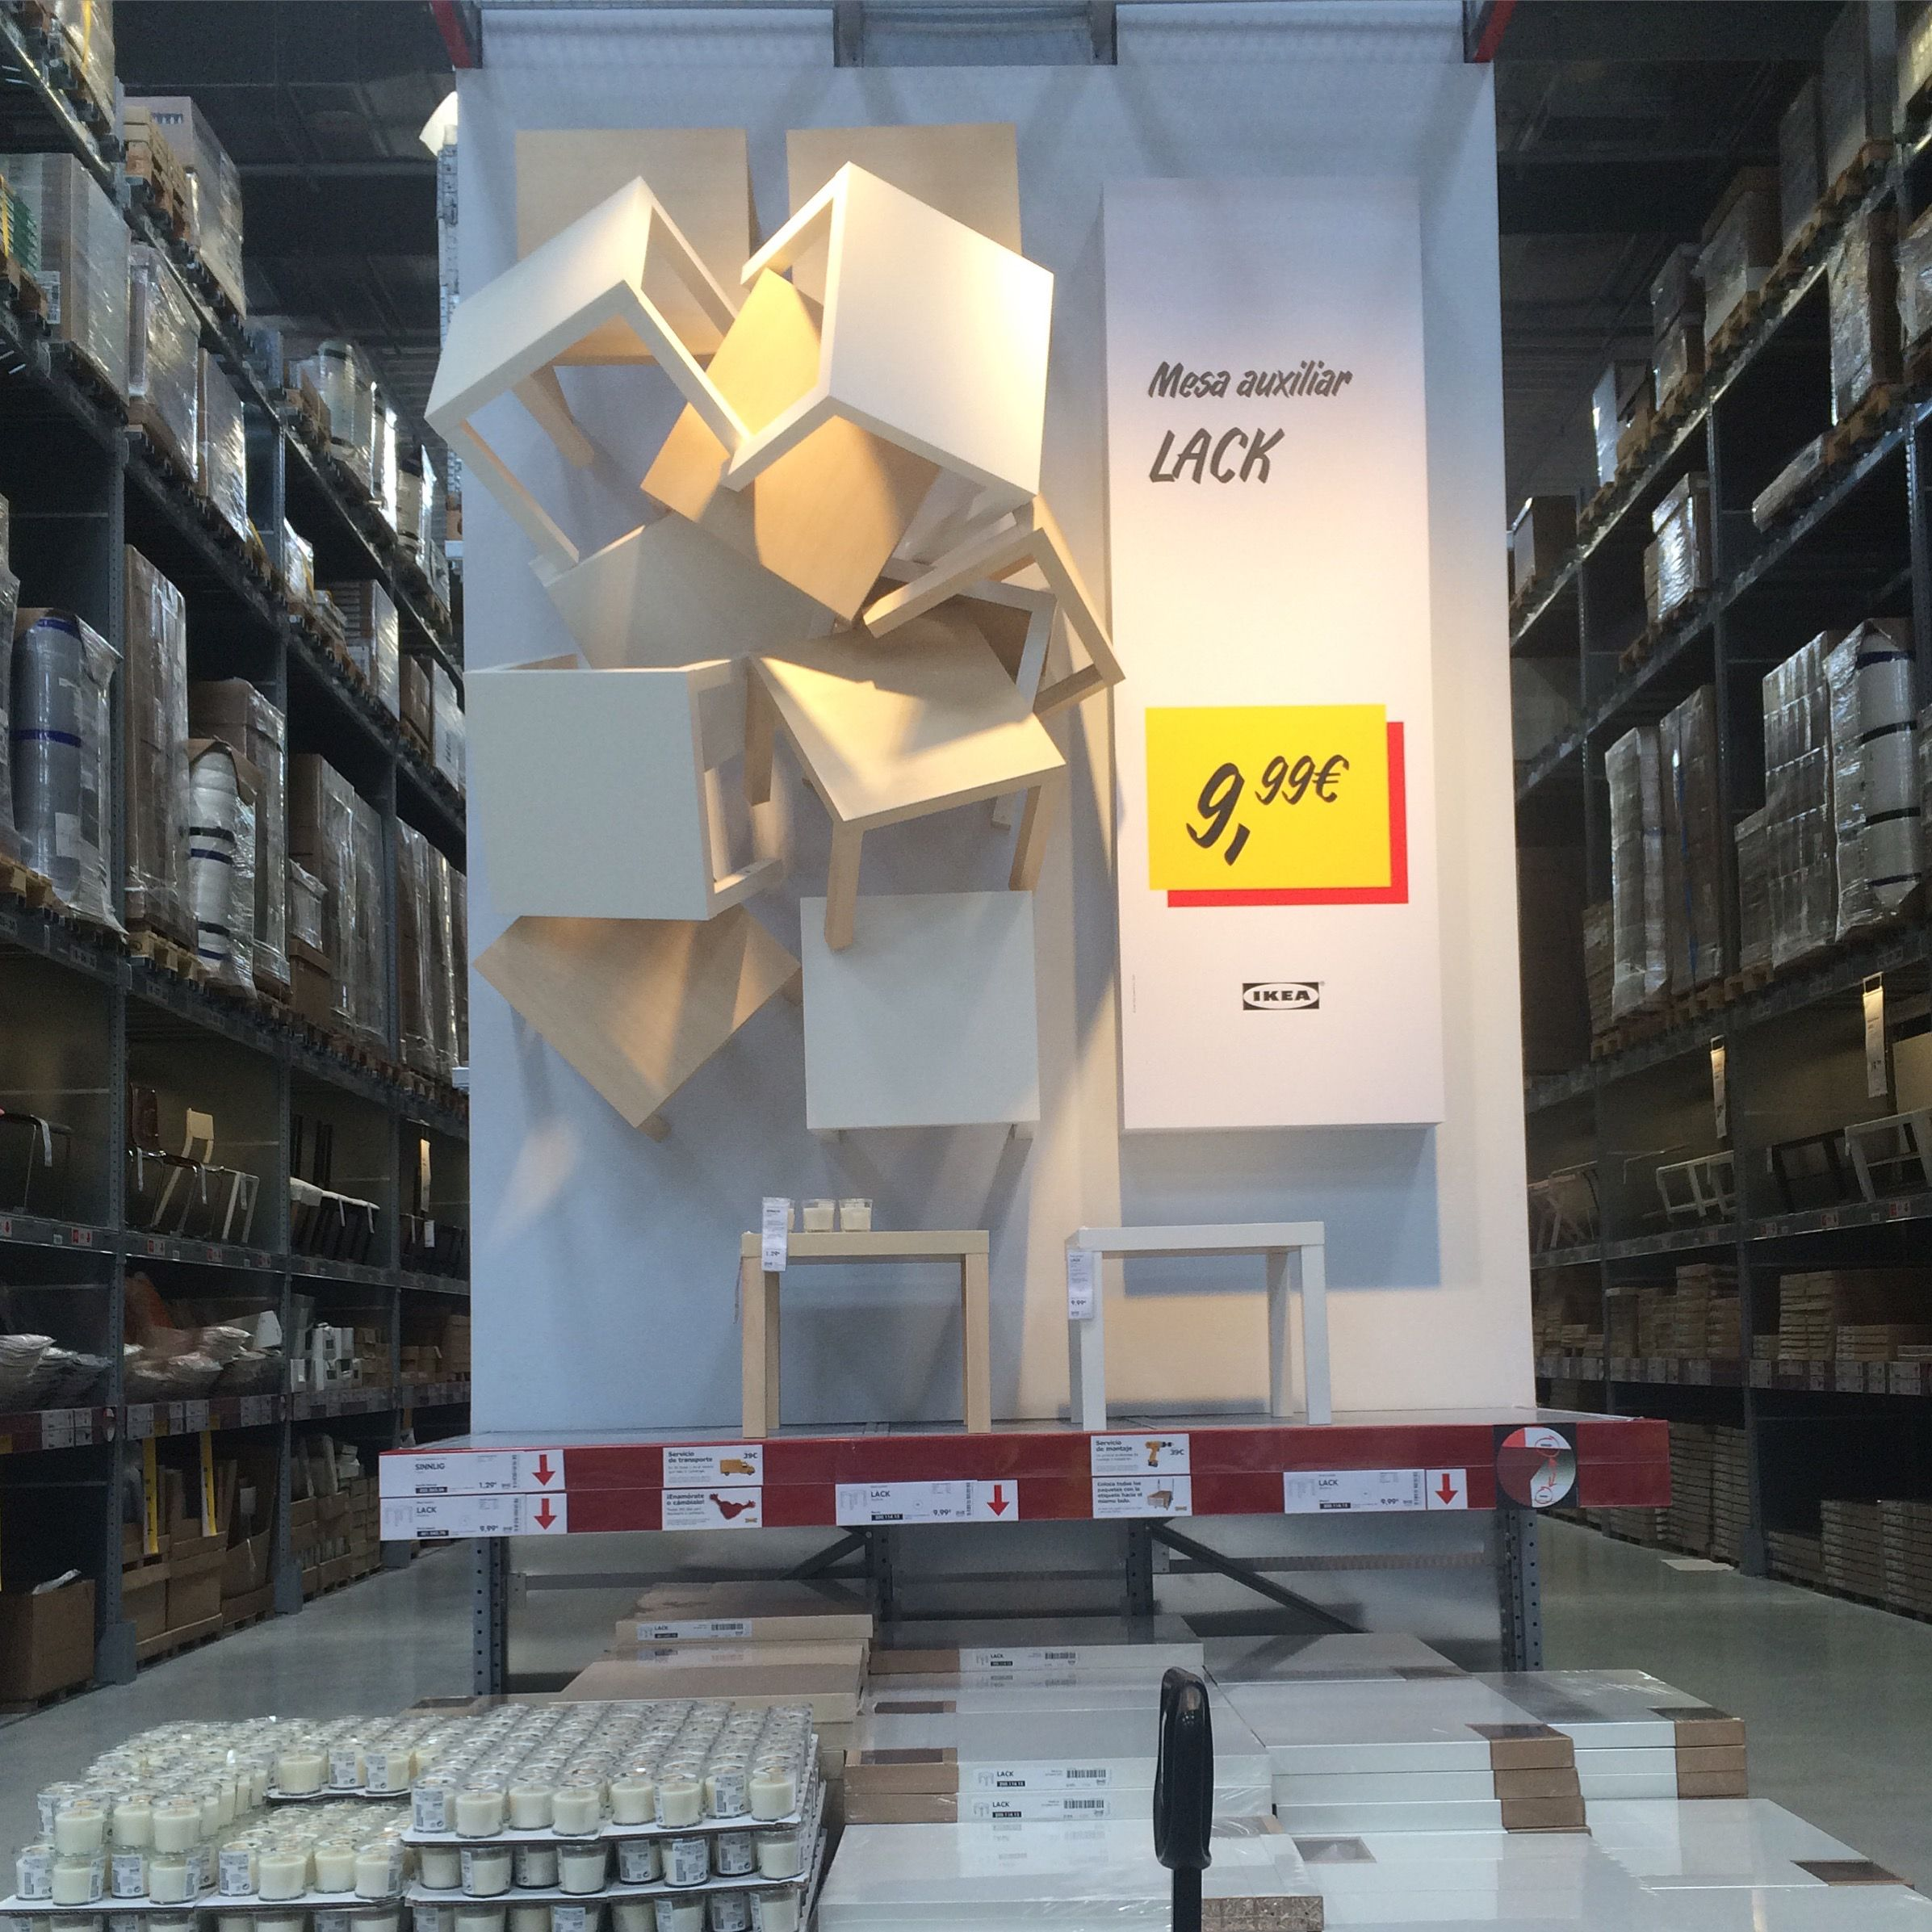 Ikea Alcorcon Madrid Self Serve Furniture Display Ikea Inspiration Ikea Store Showroom Design